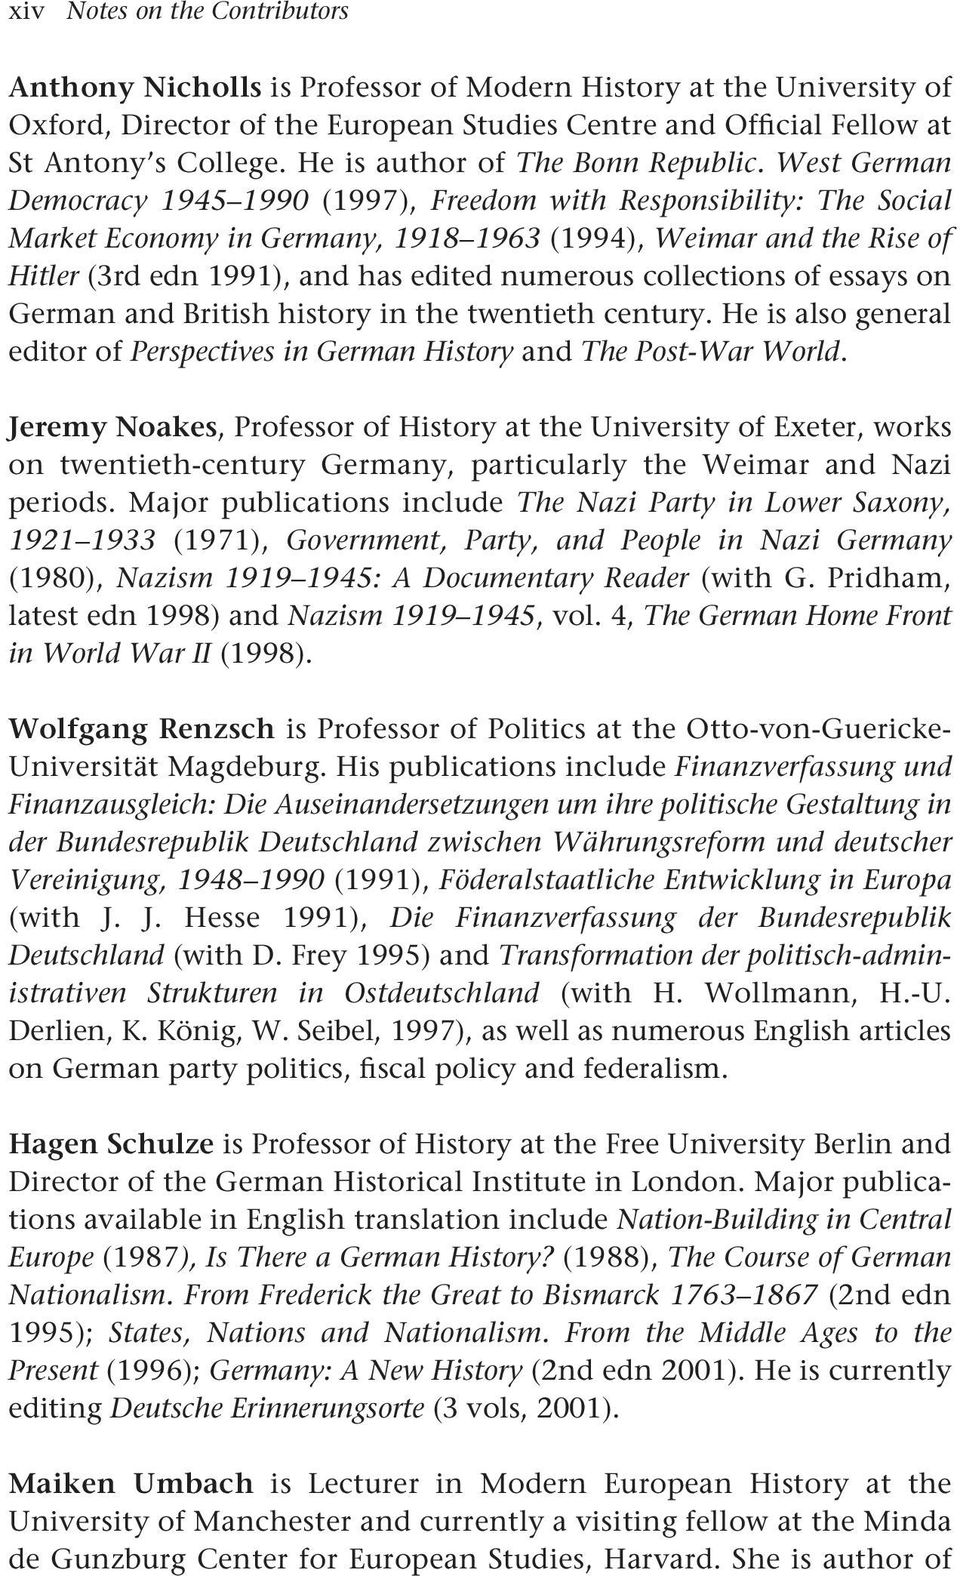 West German Democracy 1945 1990 (1997), Freedom with Responsibility: The Social Market Economy in Germany, 1918 1963 (1994), Weimar and the Rise of Hitler (3rd edn 1991), and has edited numerous